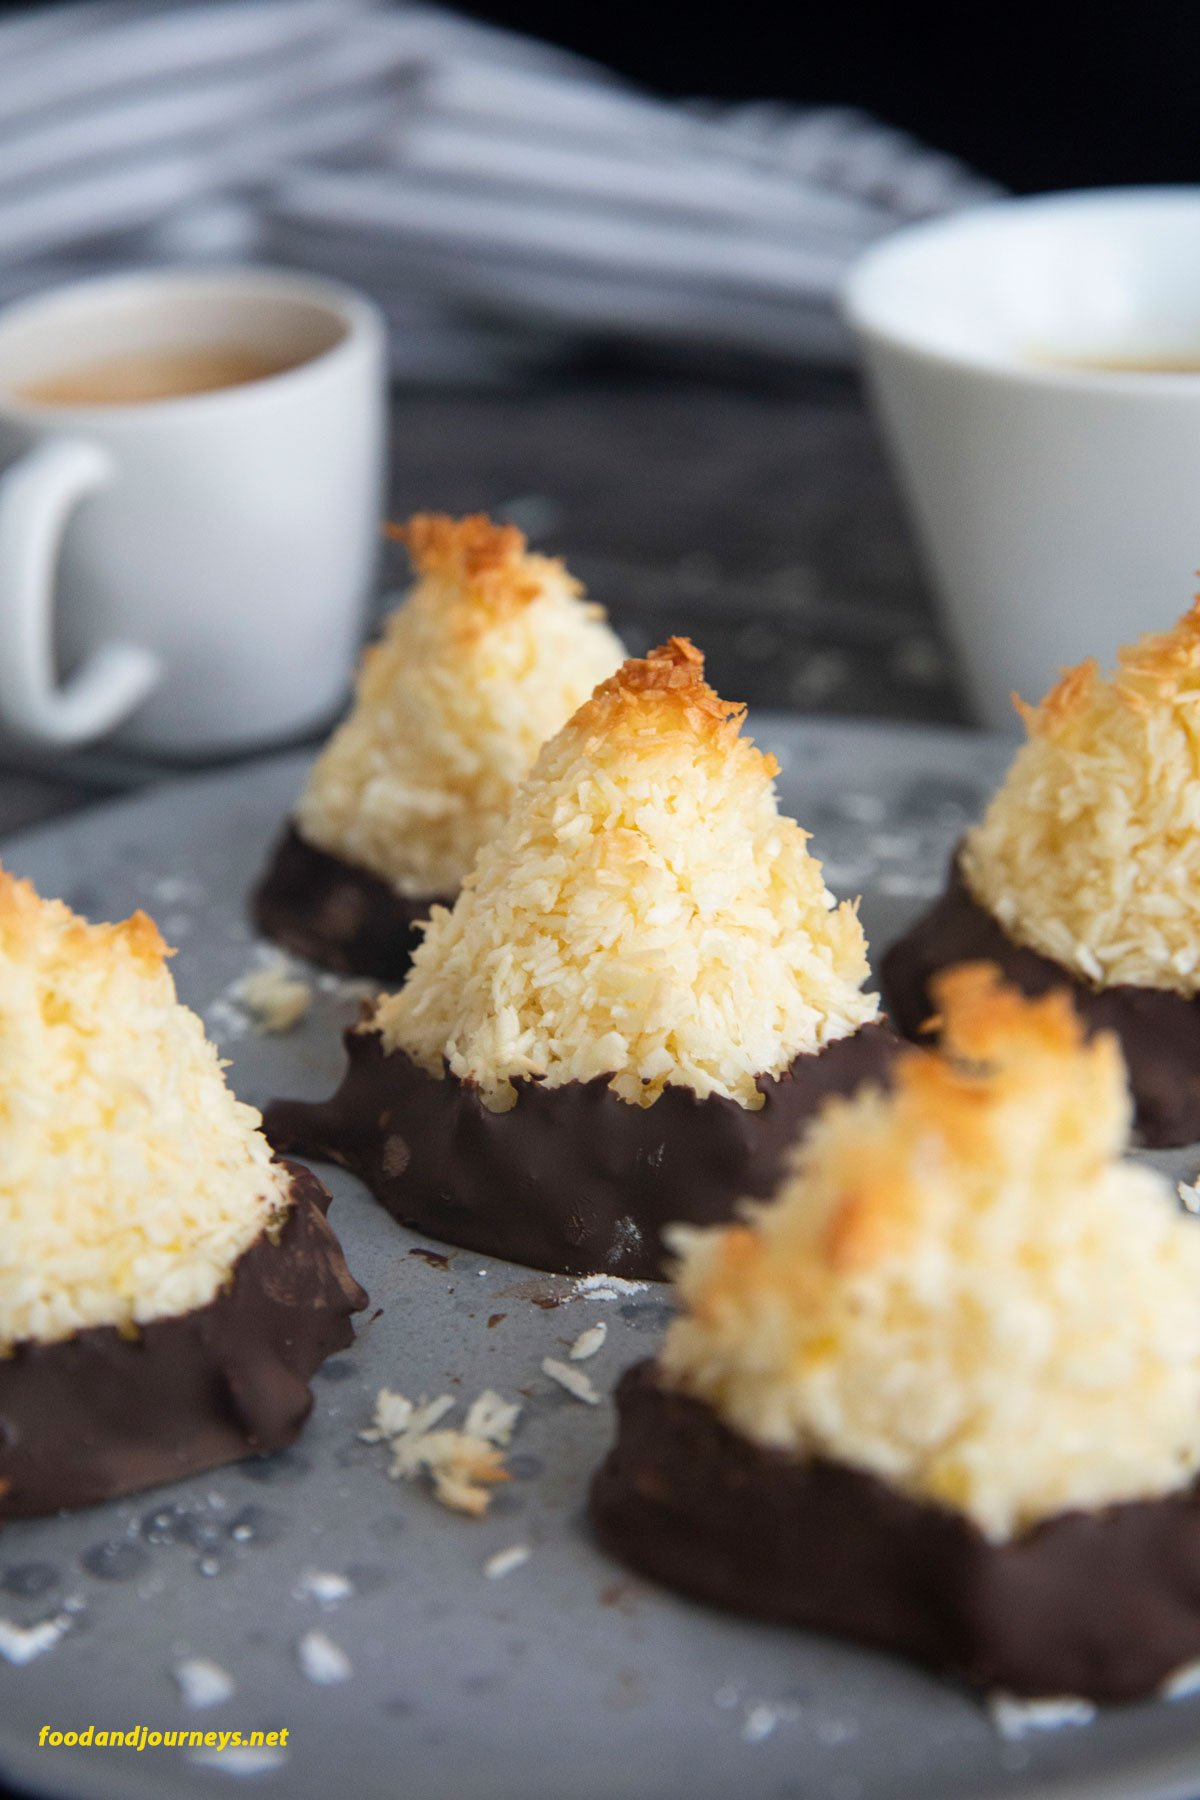 A closer shot of Swedish Coconut Bites, highlighting the texture of each piece.